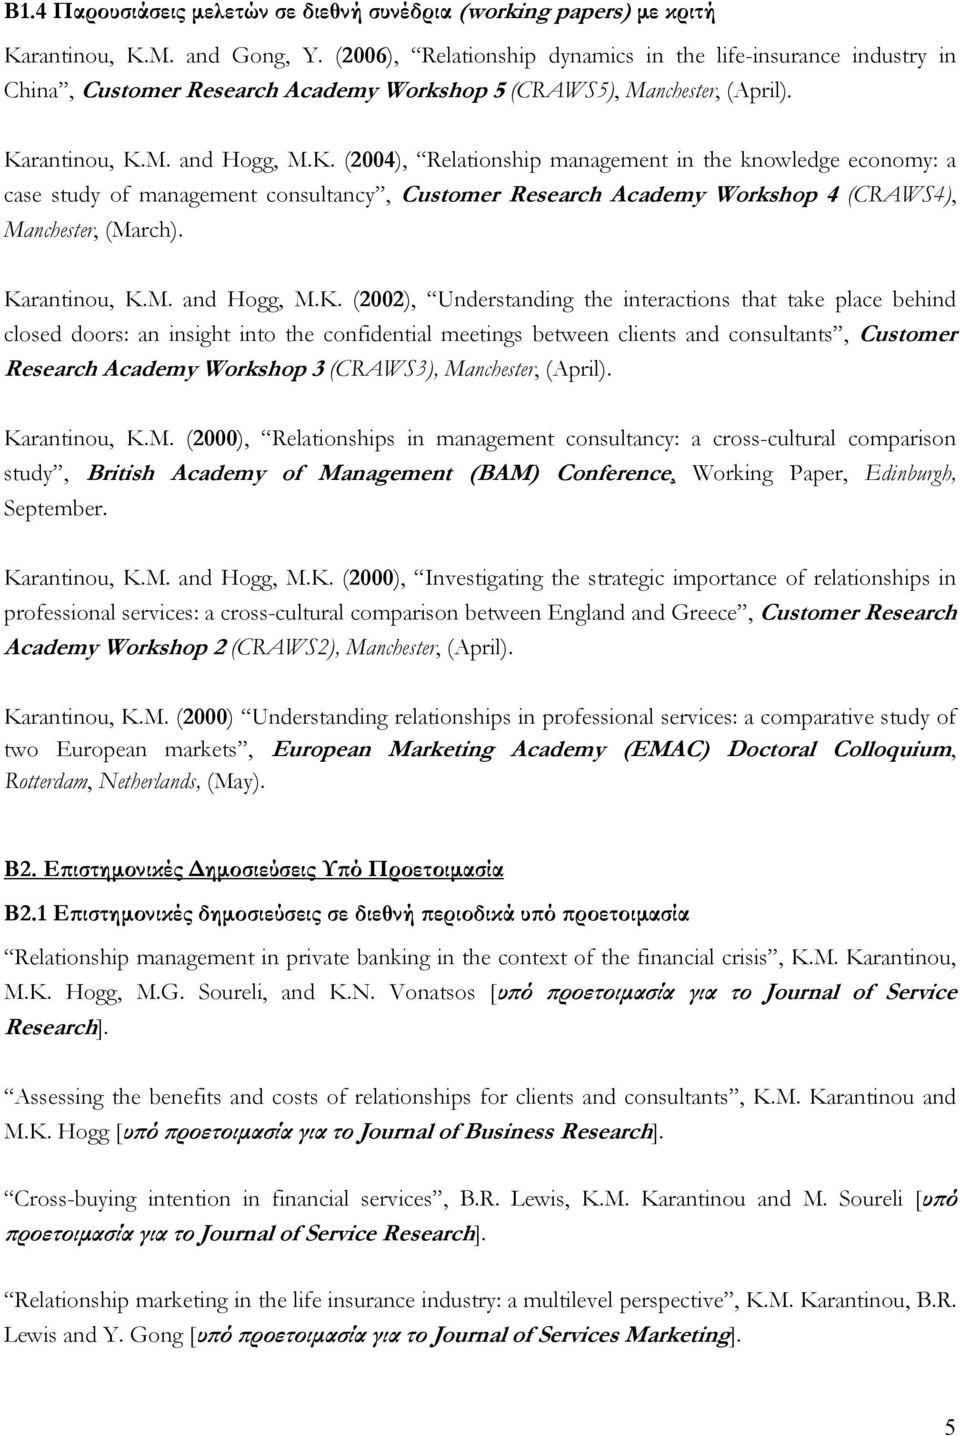 rantinou, K.M. and Hogg, M.K. (2004), Relationship management in the knowledge economy: a case study of management consultancy, Customer Research Academy Workshop 4 (CRAWS4), Manchester, (March).